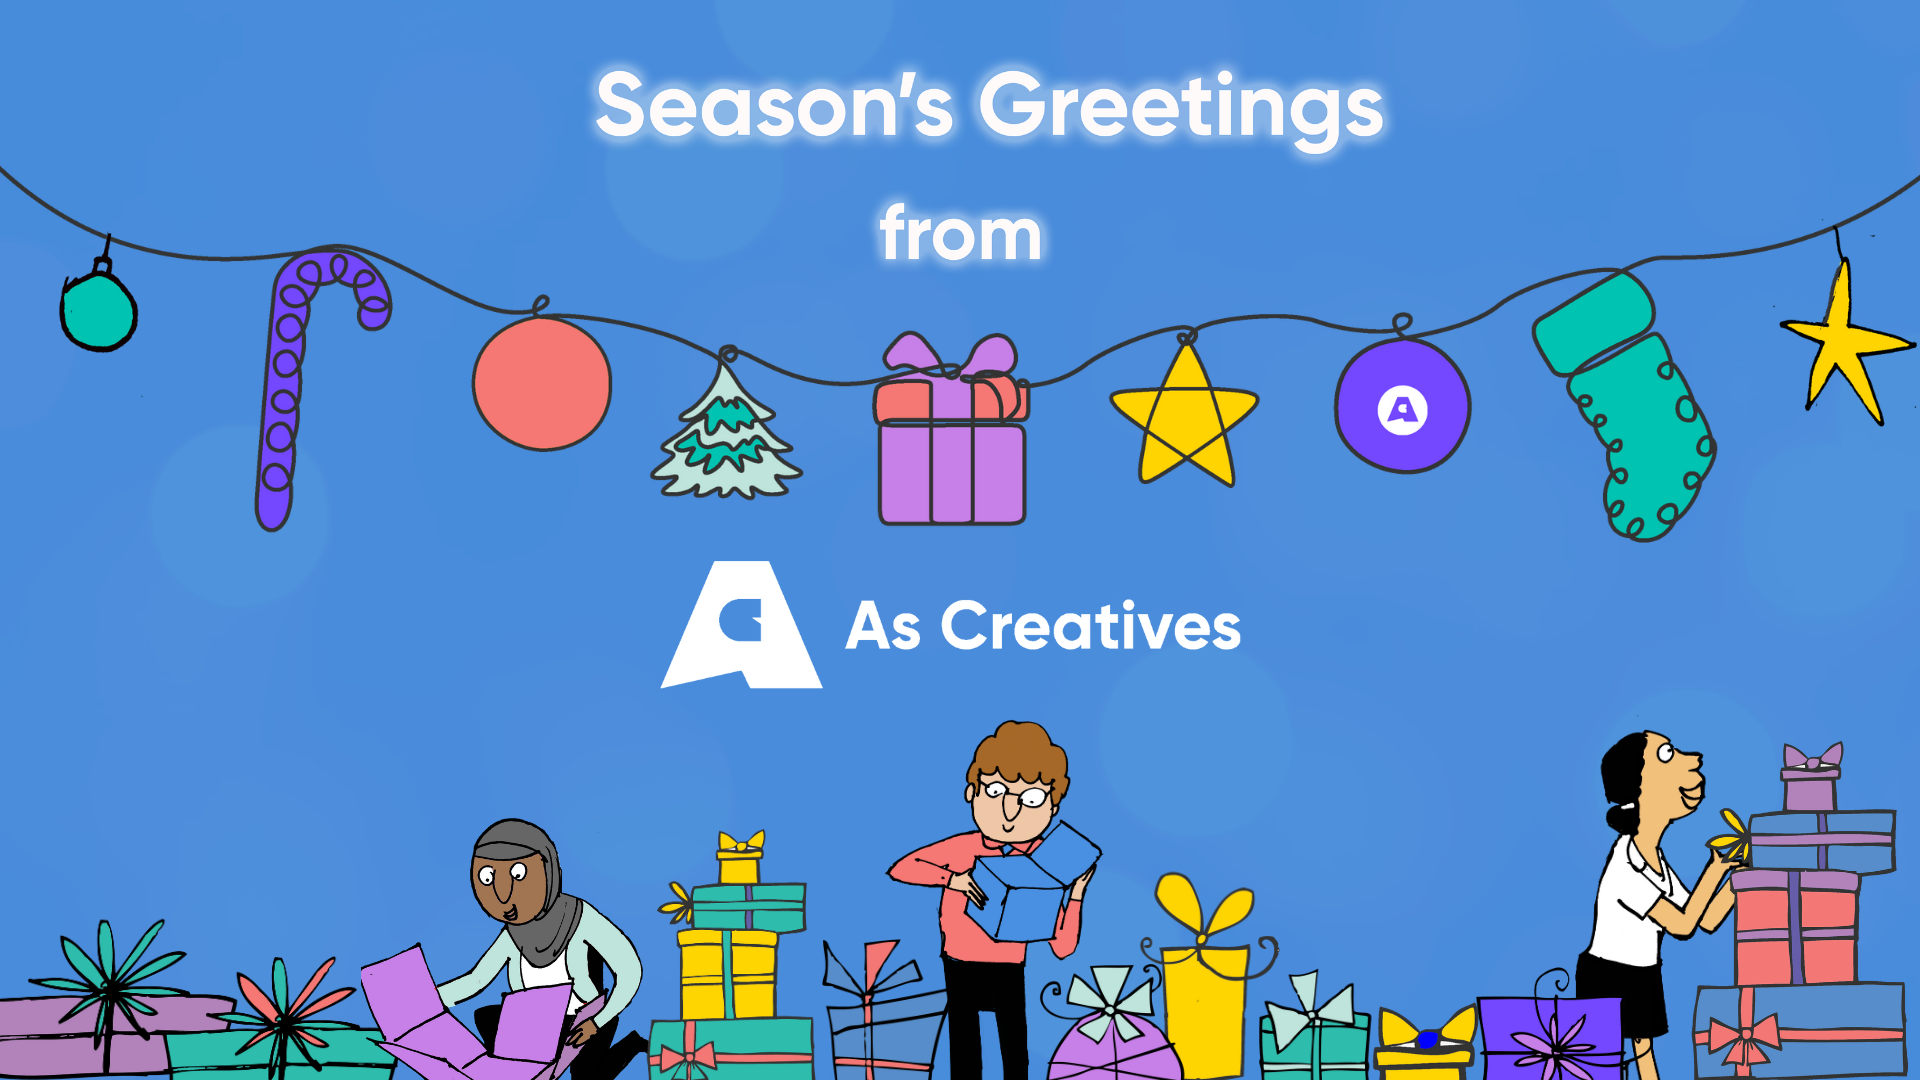 Season's Greetings for Christmas 2020 from As Creatives